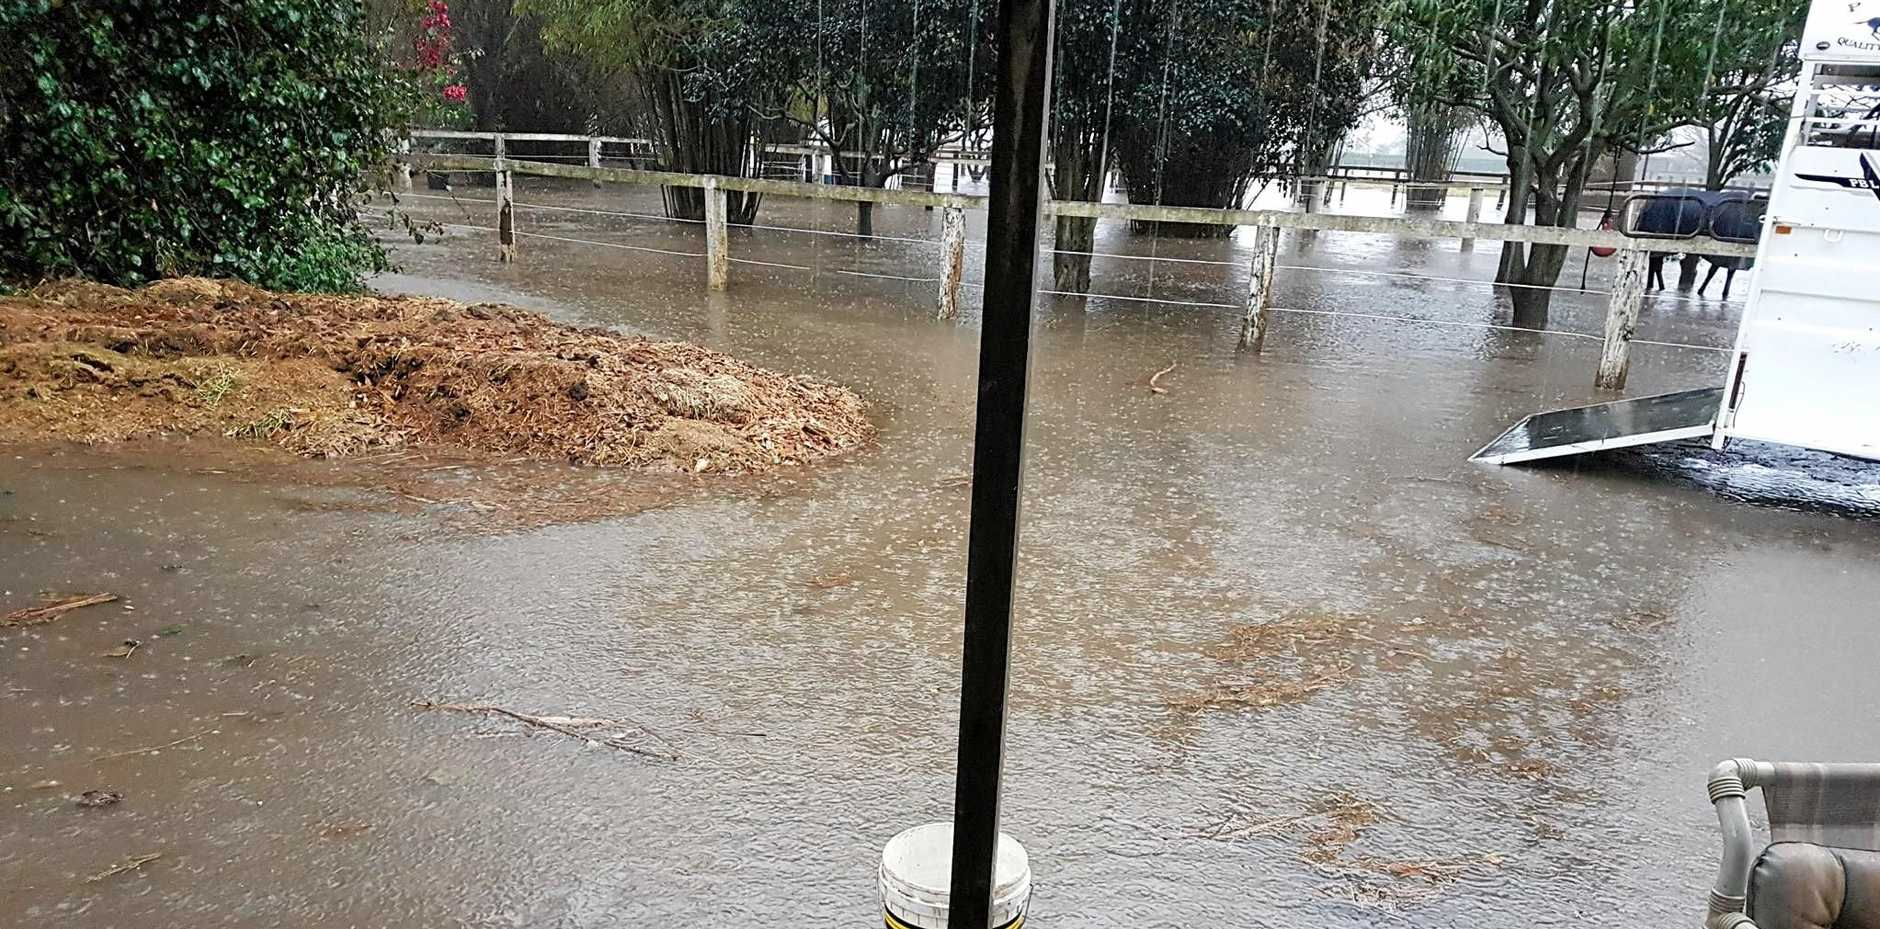 NO HELP: This photo was taken two hours prior to yesterday's intense downpour, looking towards the already-flooded paddocks where William Melvin's horses stood during the storm